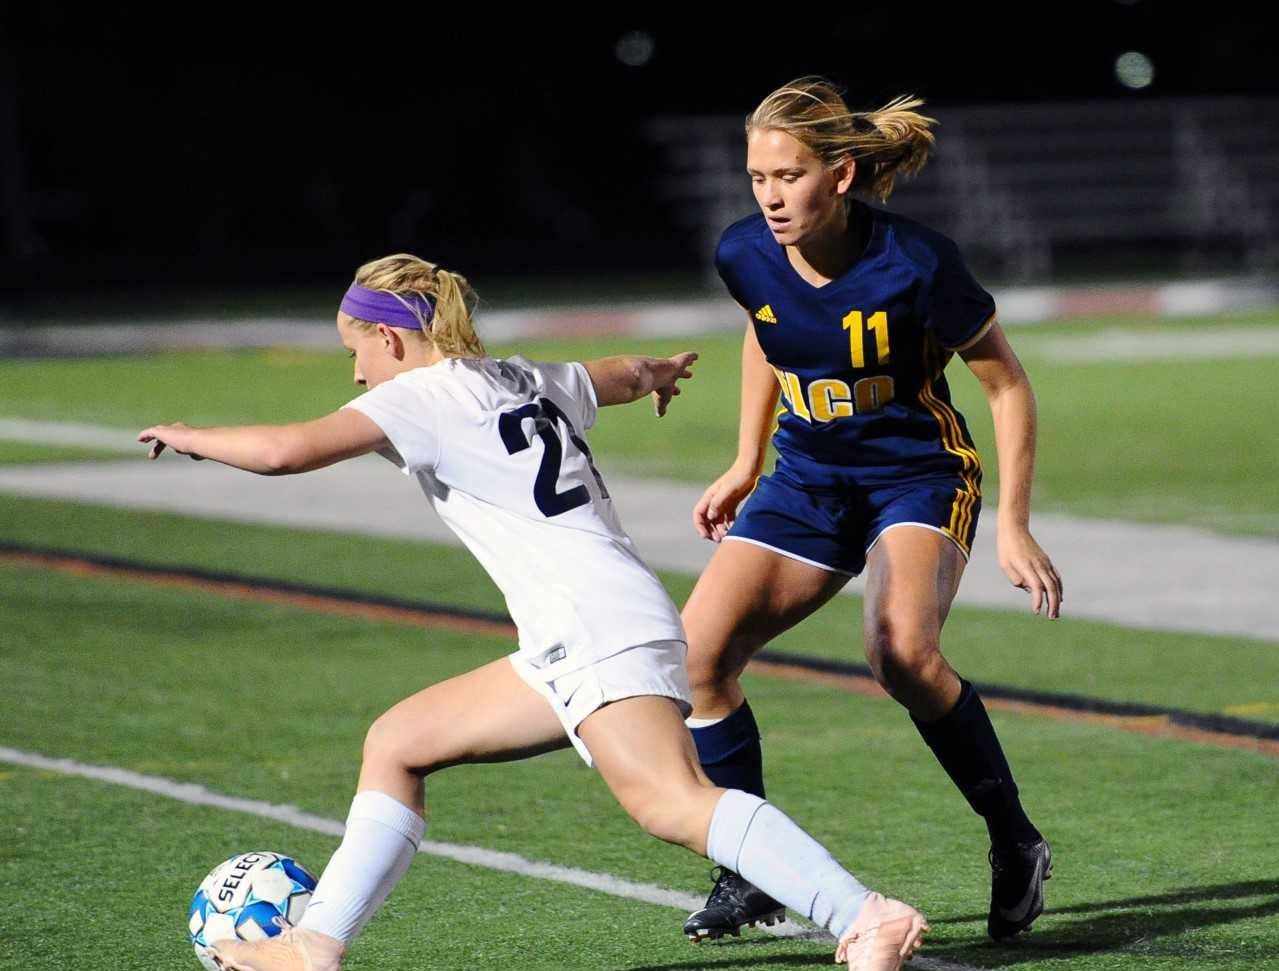 Elco's Julia Nelson (11) defends against CV's Madison Delgado (21) during the second half of play. Photo Jeff Ruppenthal.